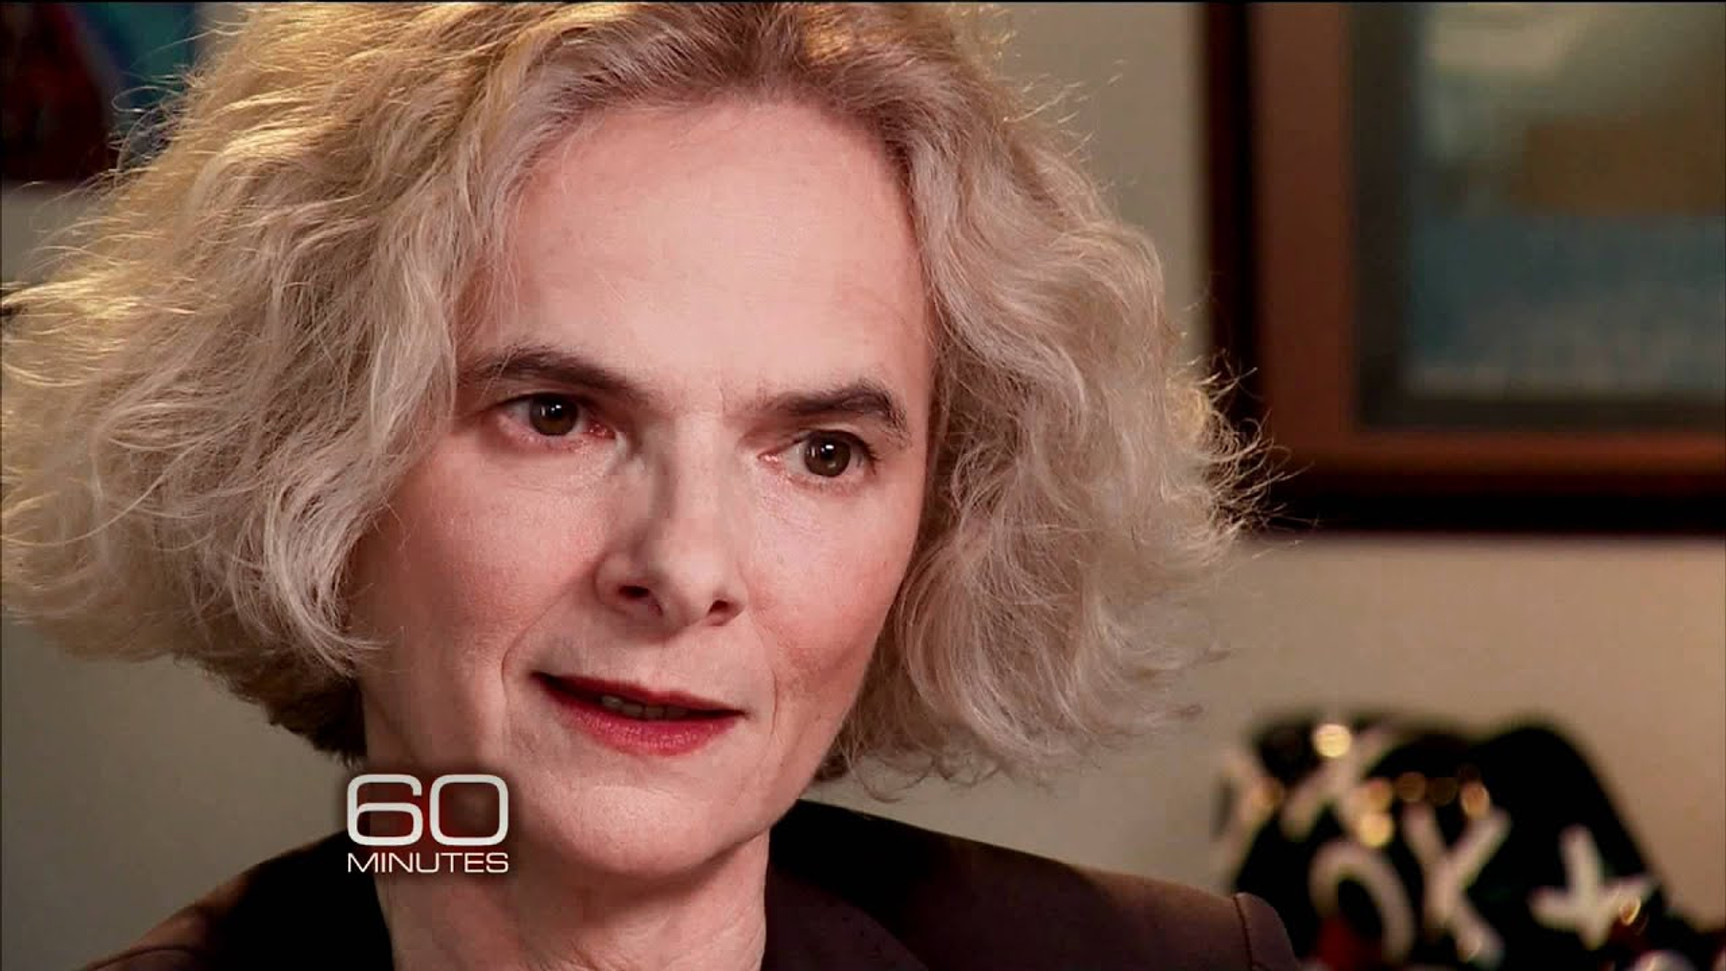 Hooked: Why bad habits are hard to break | 13:30 |  60 Minutes: Dr. Nora Volkow